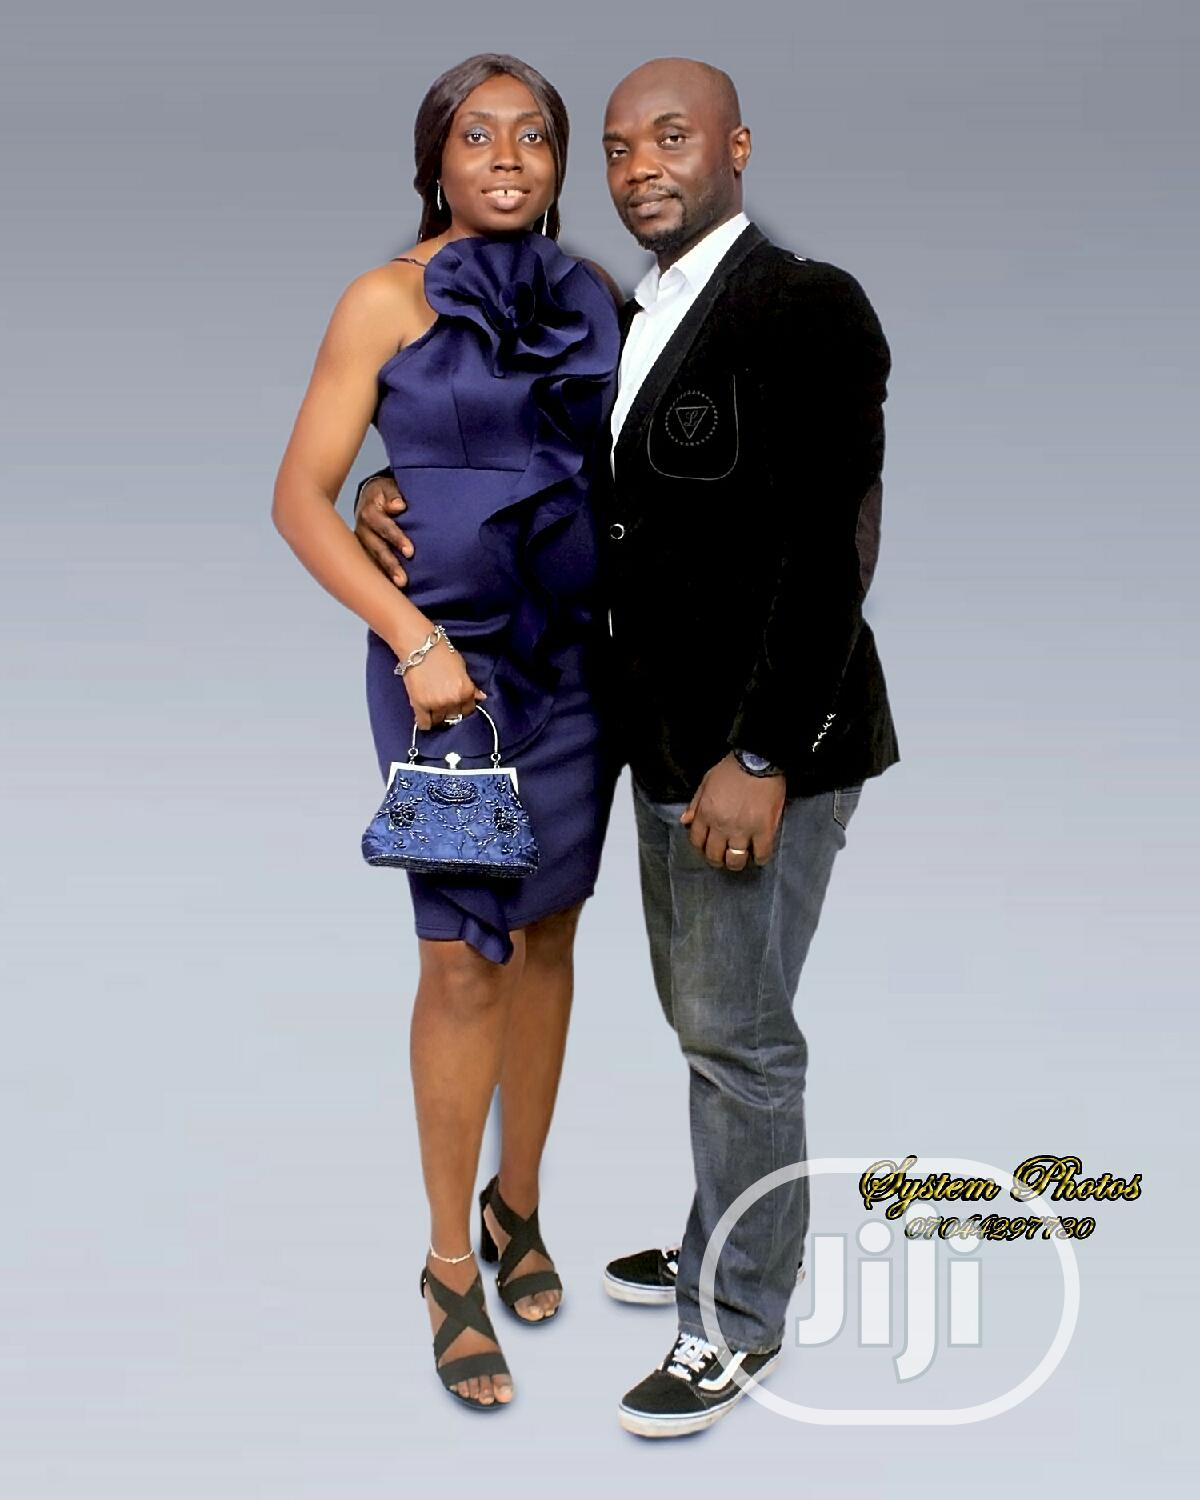 Photo Shoot/Session | Photography & Video Services for sale in Lagos Island, Lagos State, Nigeria